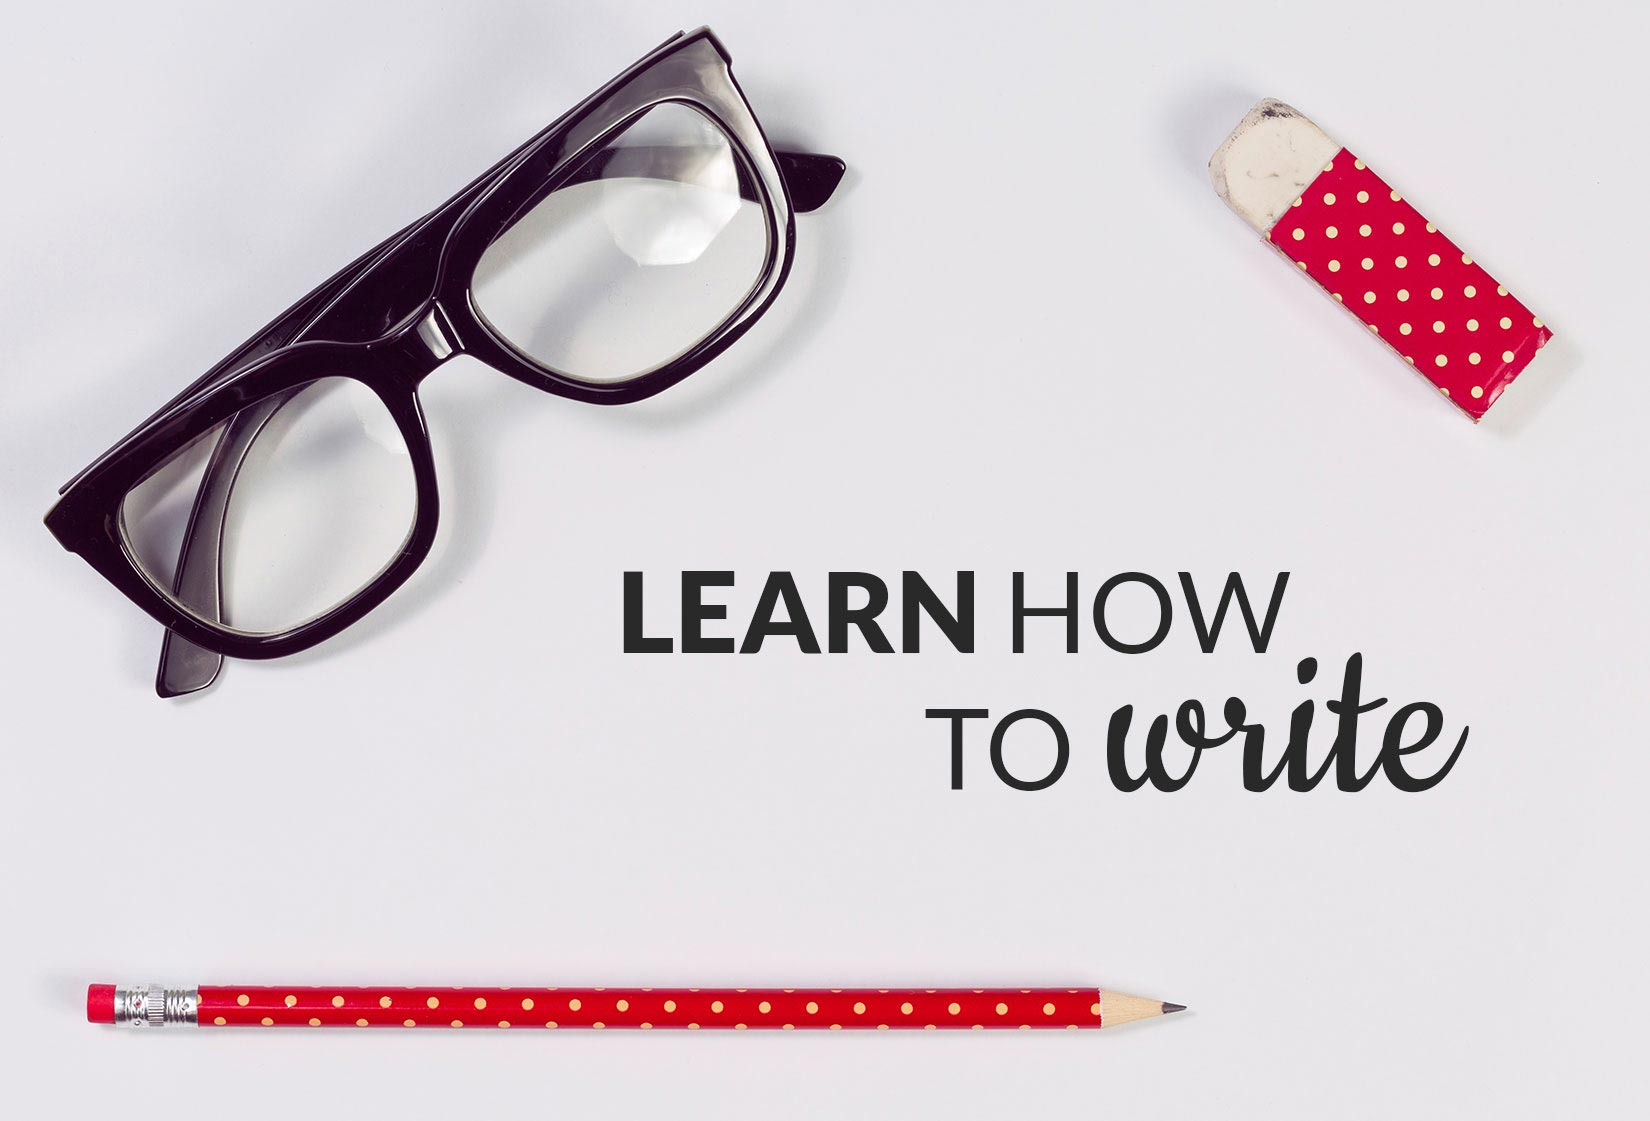 learn-how-to-write-banner-dec